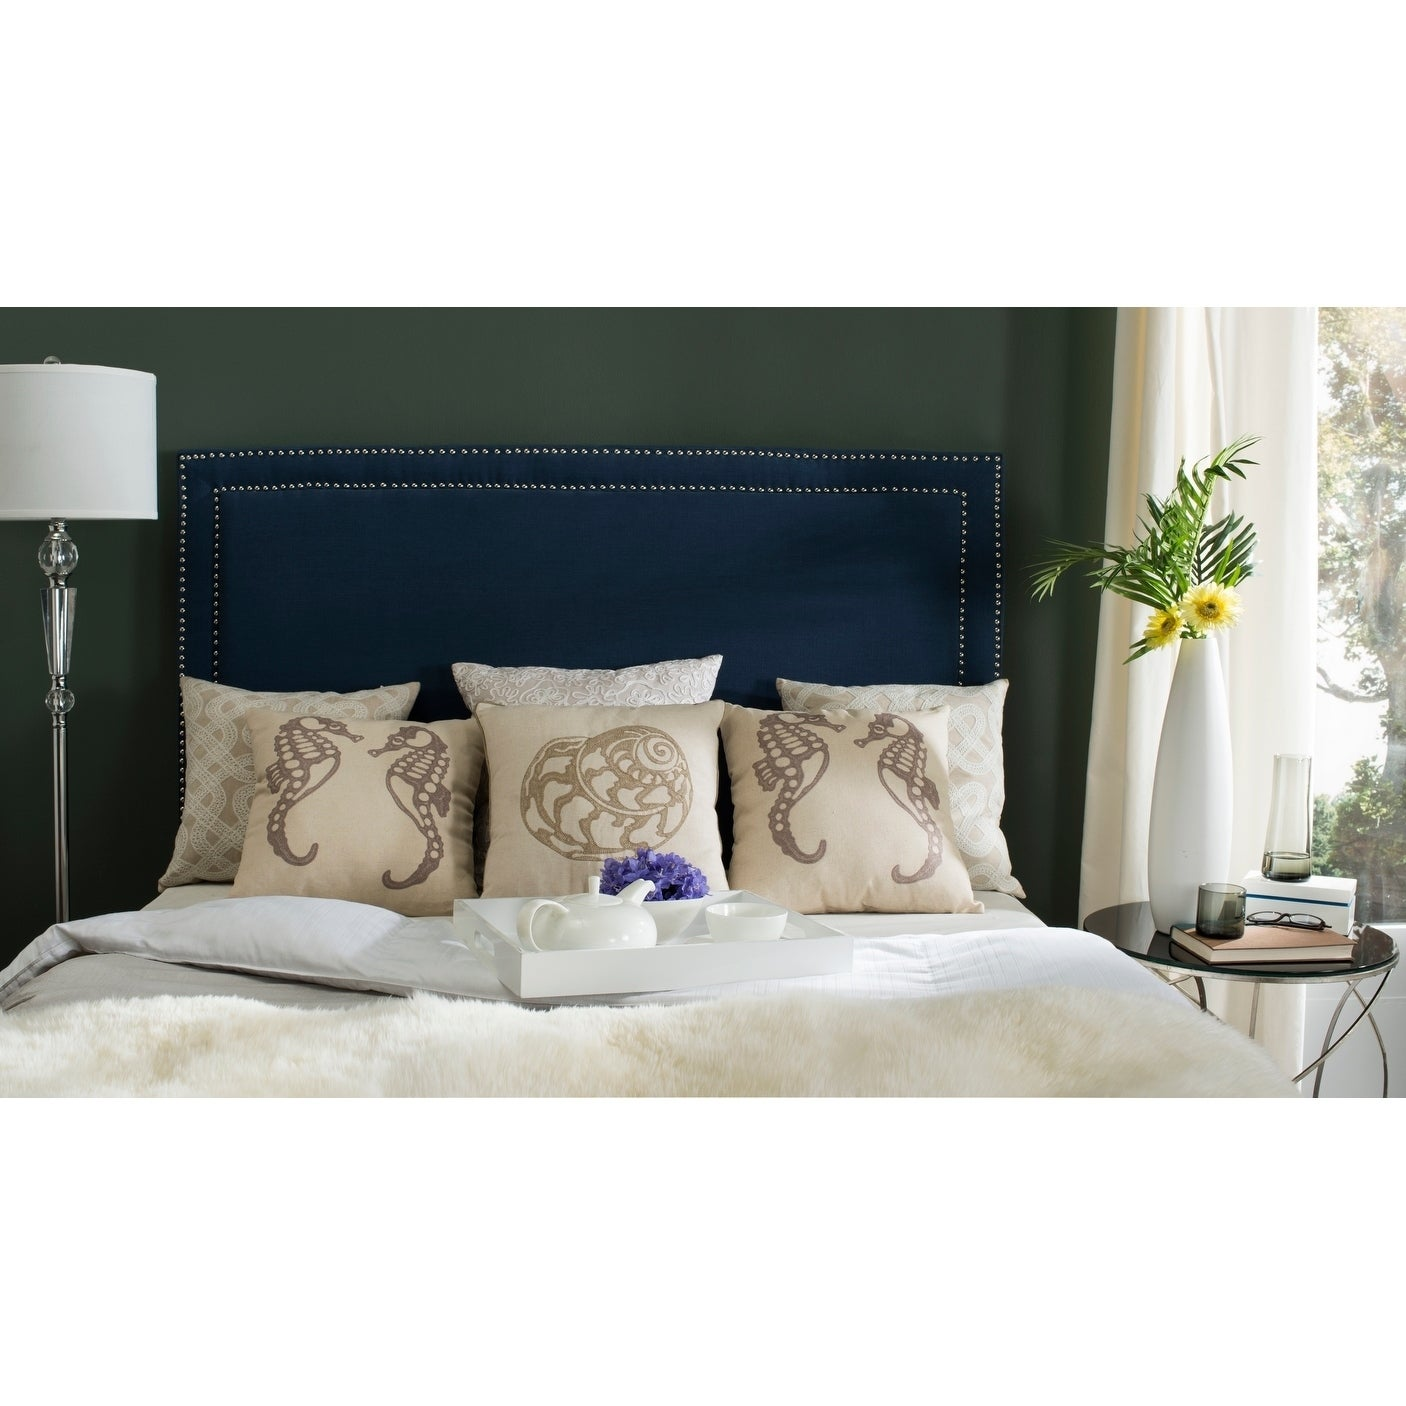 Safavieh Cory Navy Blue Upholstered Headboard Silver Nailhead Queen Overstock 10988909